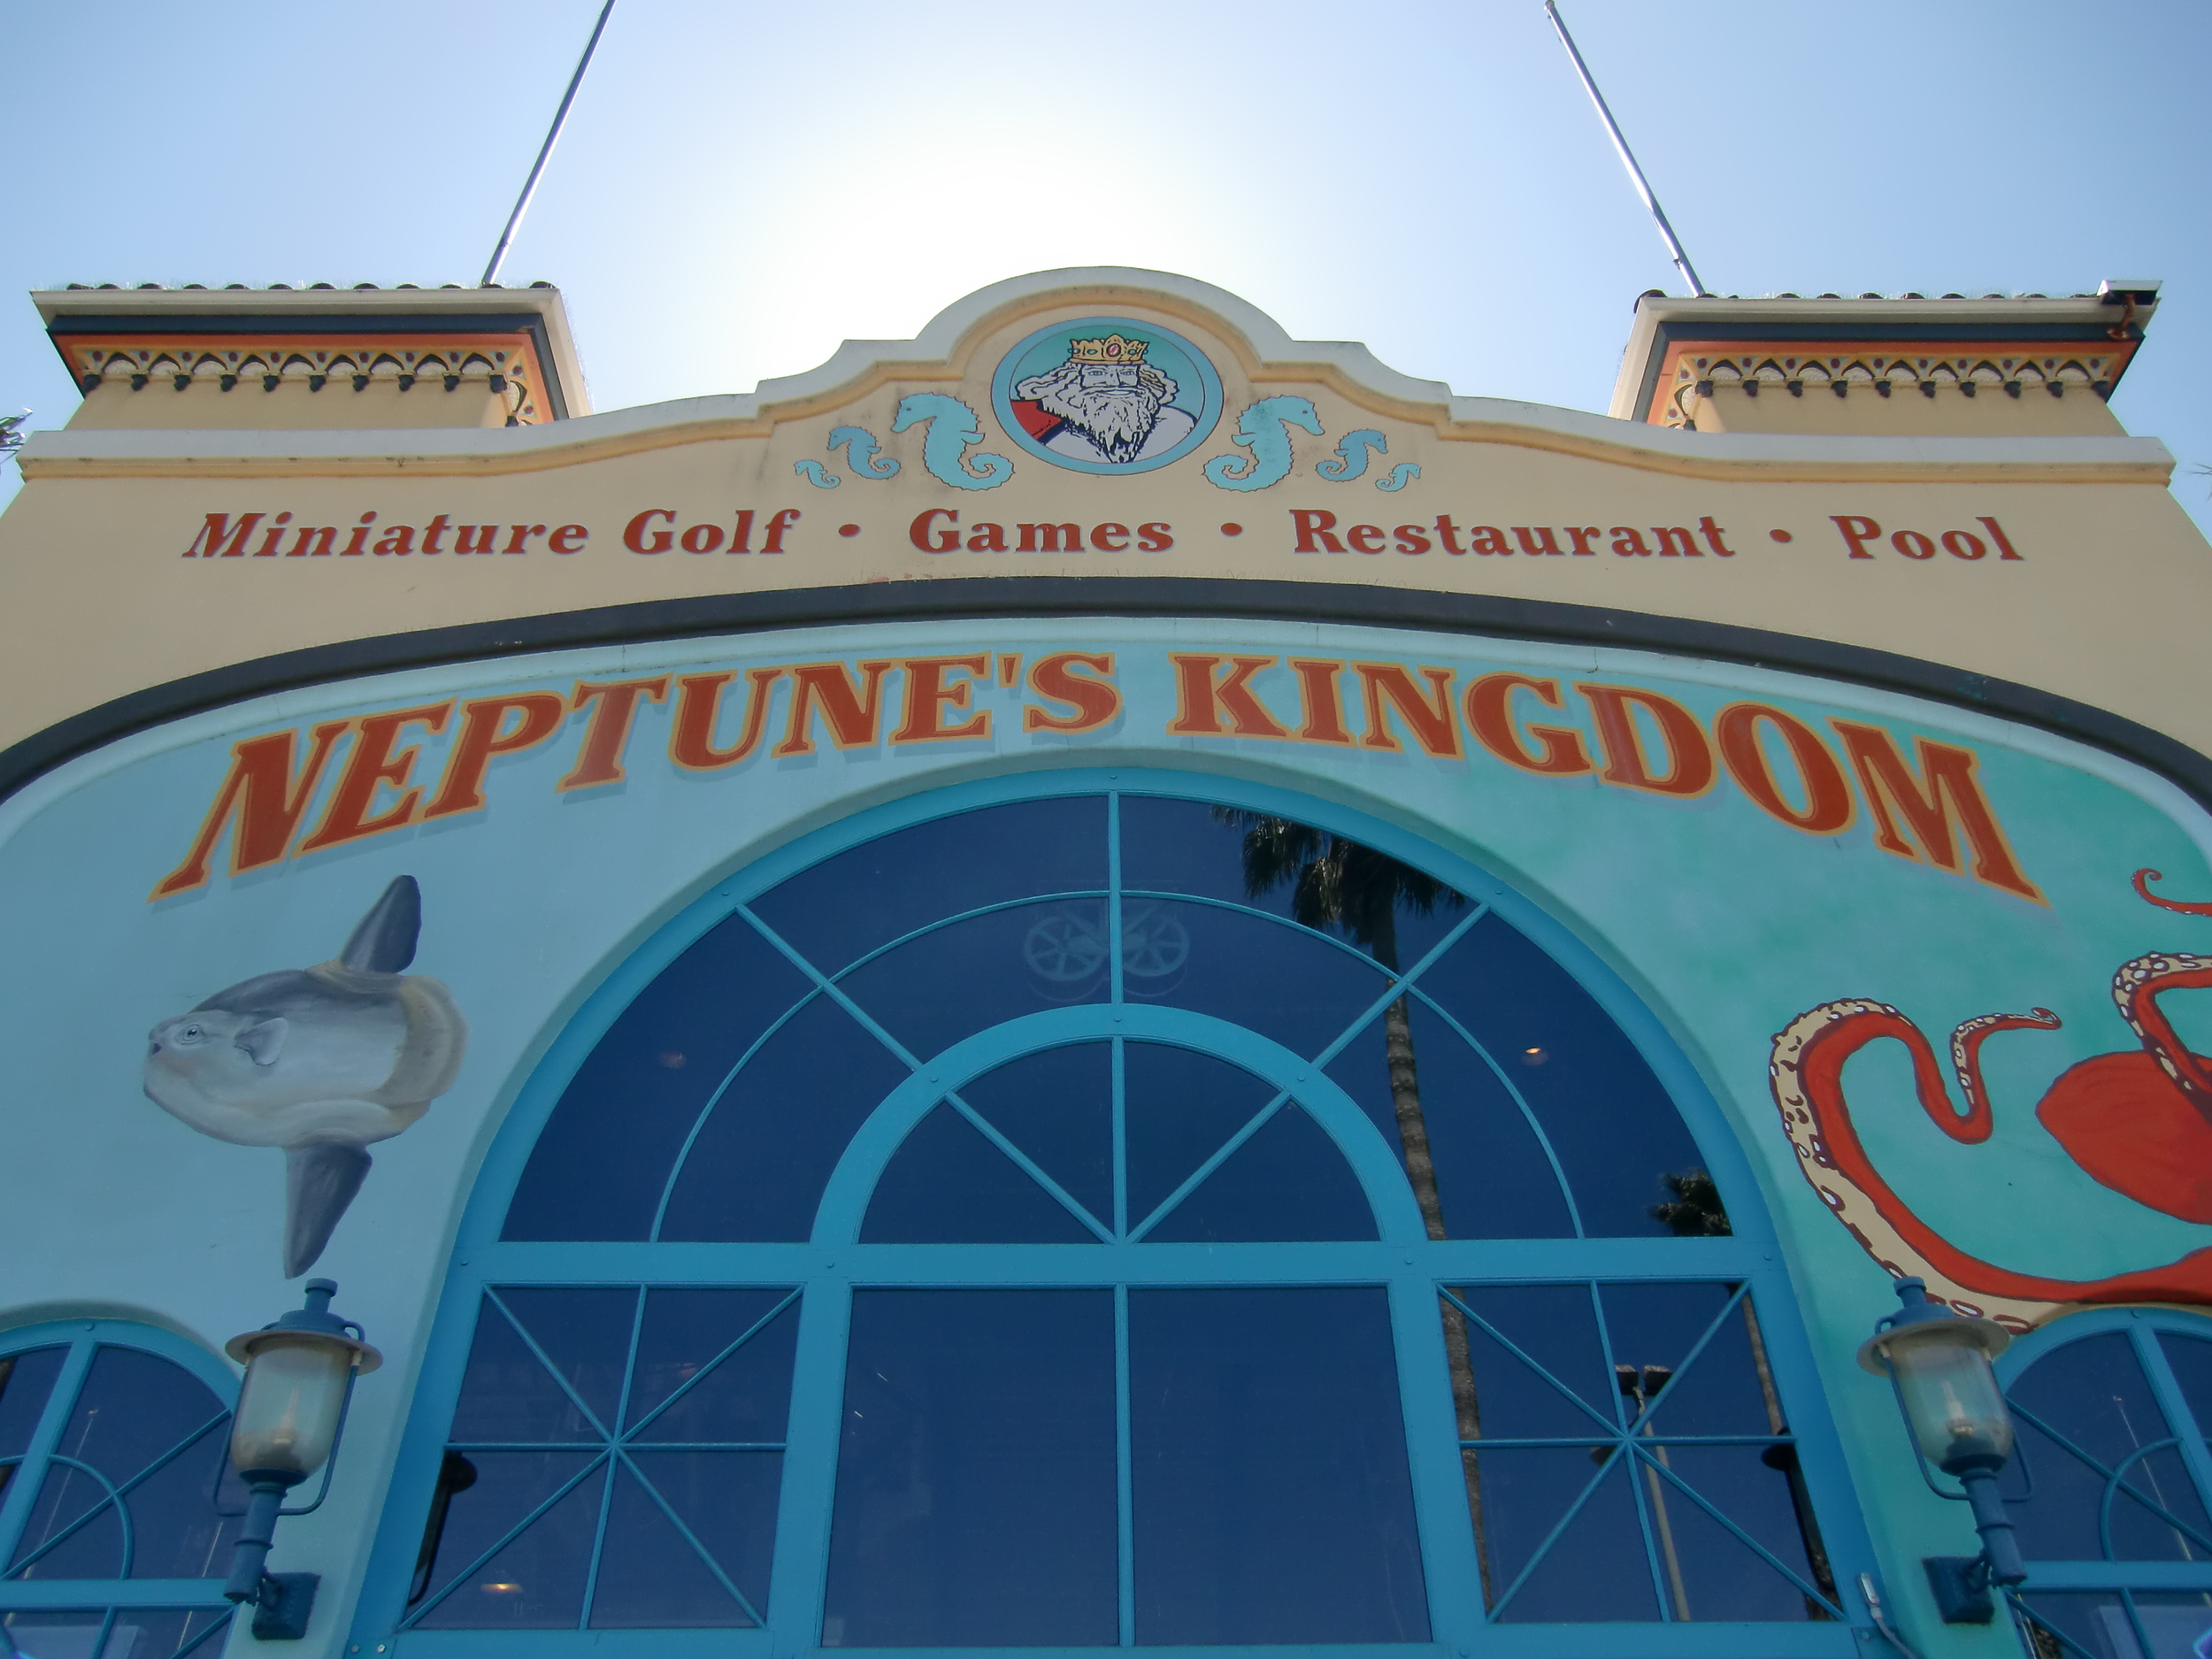 The classic Neptune's Kingdom. I've loved this for as long as I can remember